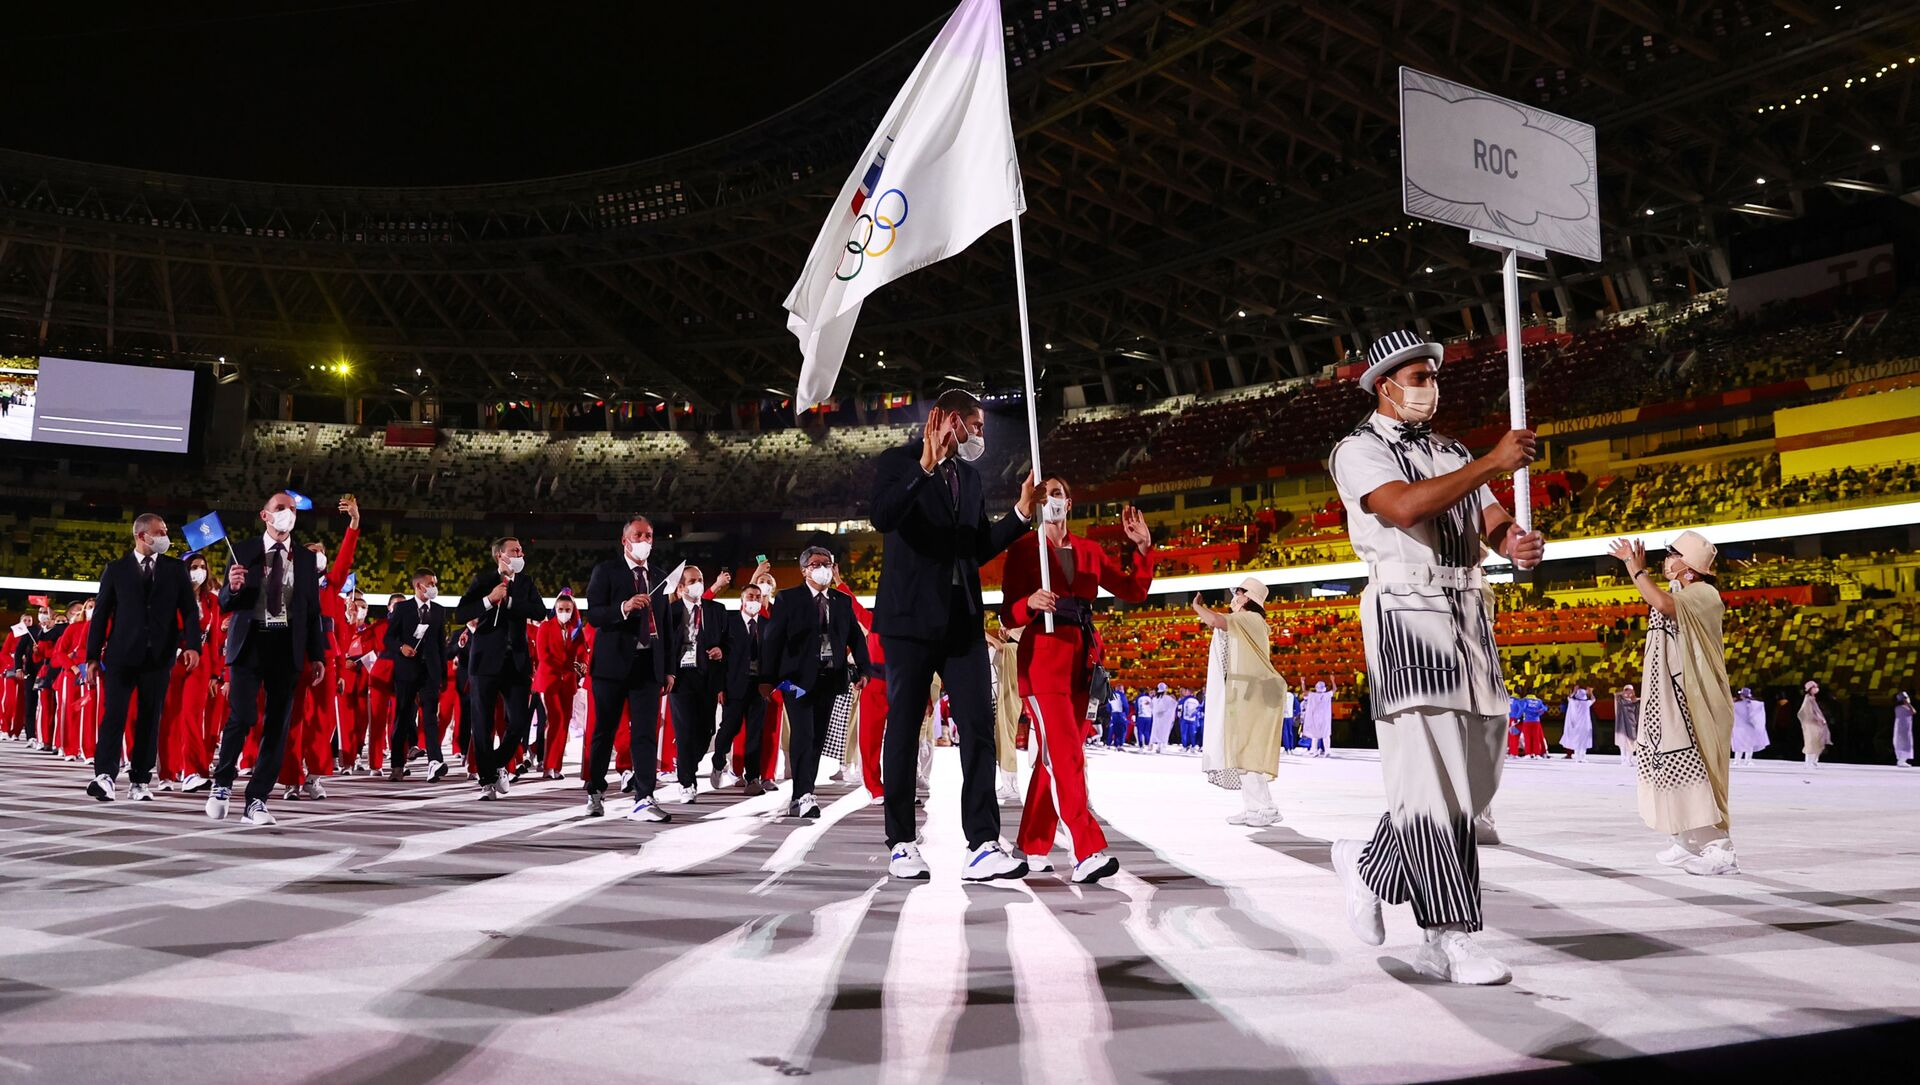 Tokyo 2020 Olympics - The Tokyo 2020 Olympics Opening Ceremony - Olympic Stadium, Tokyo, Japan - July 23, 2021. Flag bearer Sofya Velikaya of the Russian Olympic Committee leads her contingent during the athletes' parade at the opening ceremony - Sputnik International, 1920, 24.07.2021